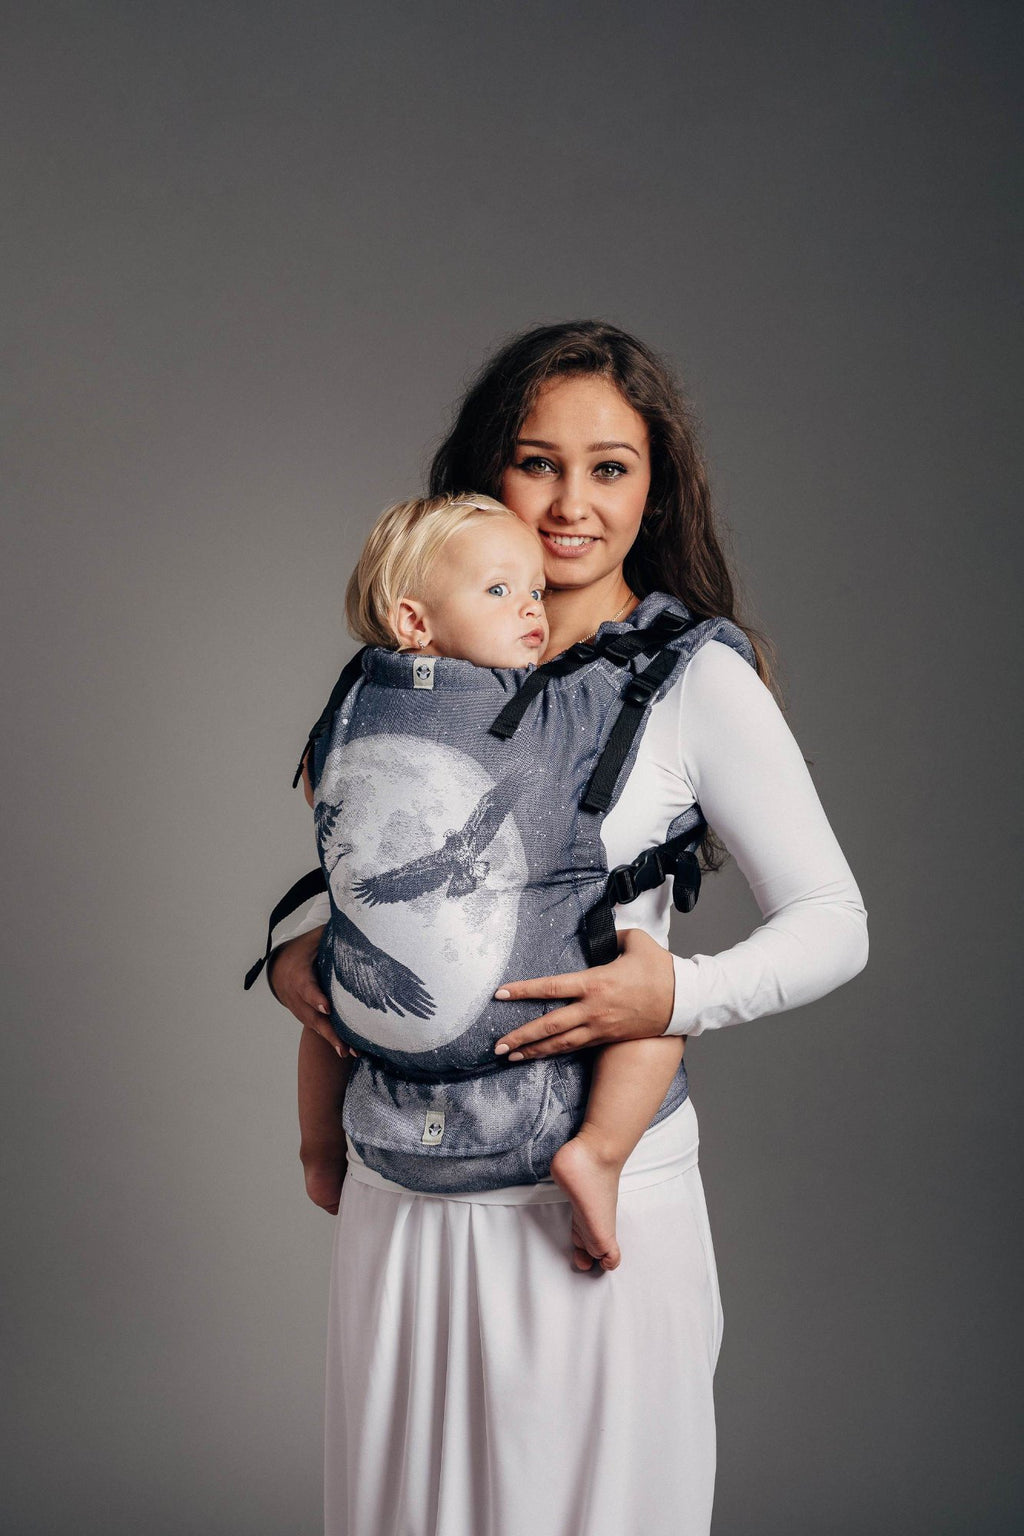 lennylamb moonlight eagle lenny up baby carrier